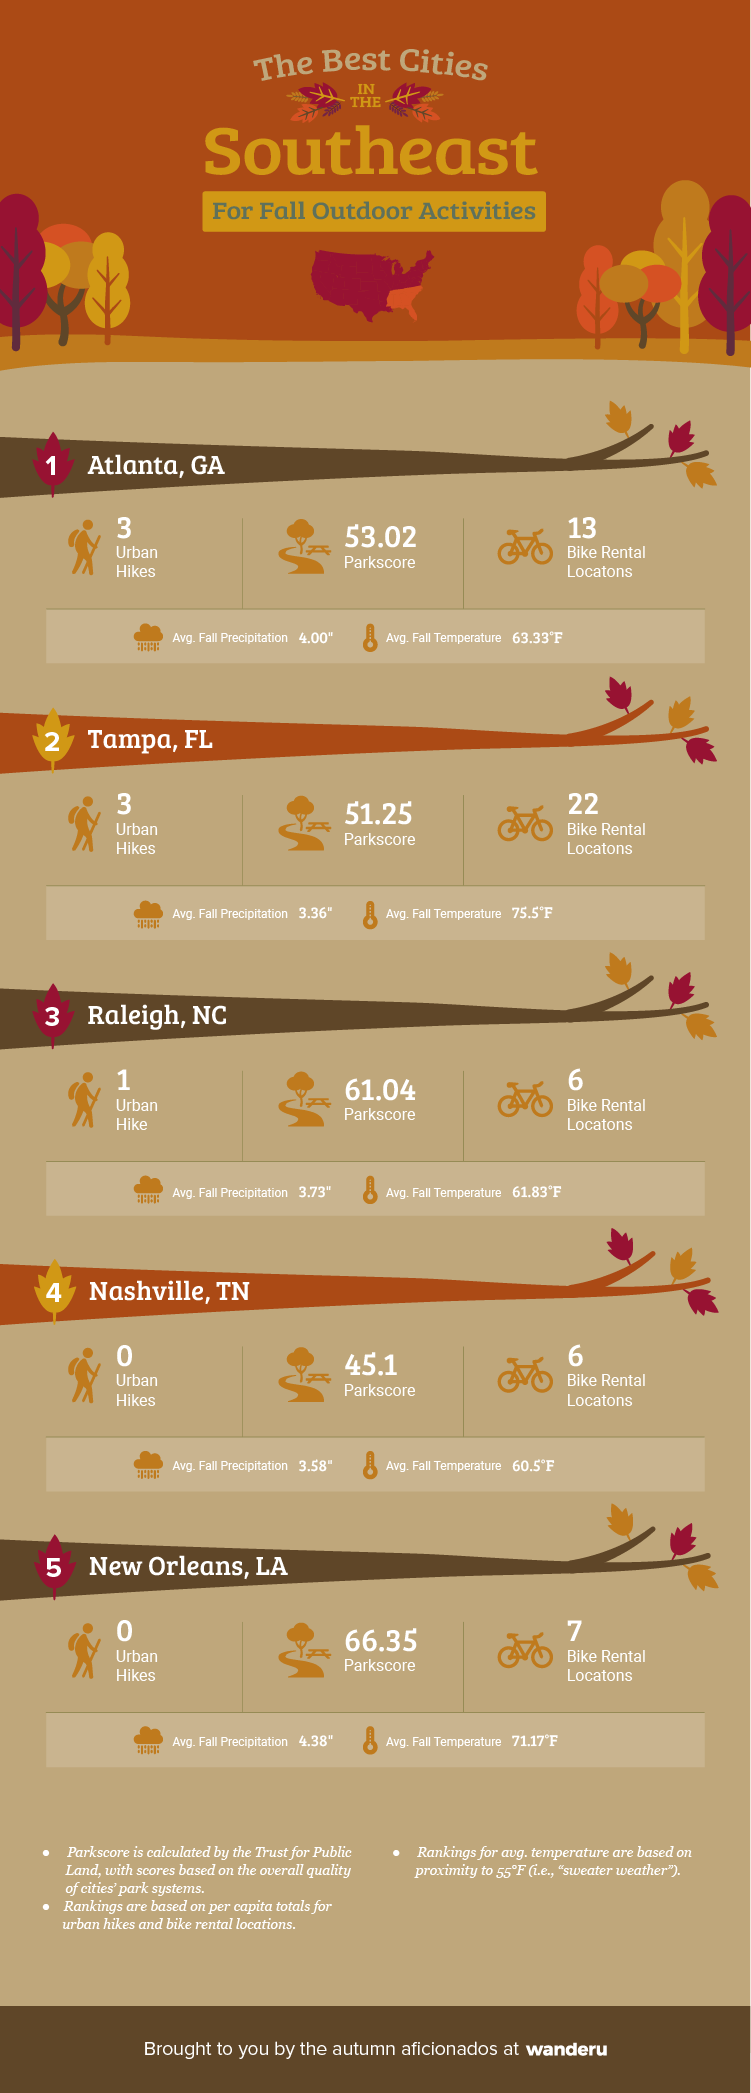 Ranking of the top five cities in the Southeast for outdoor activities.